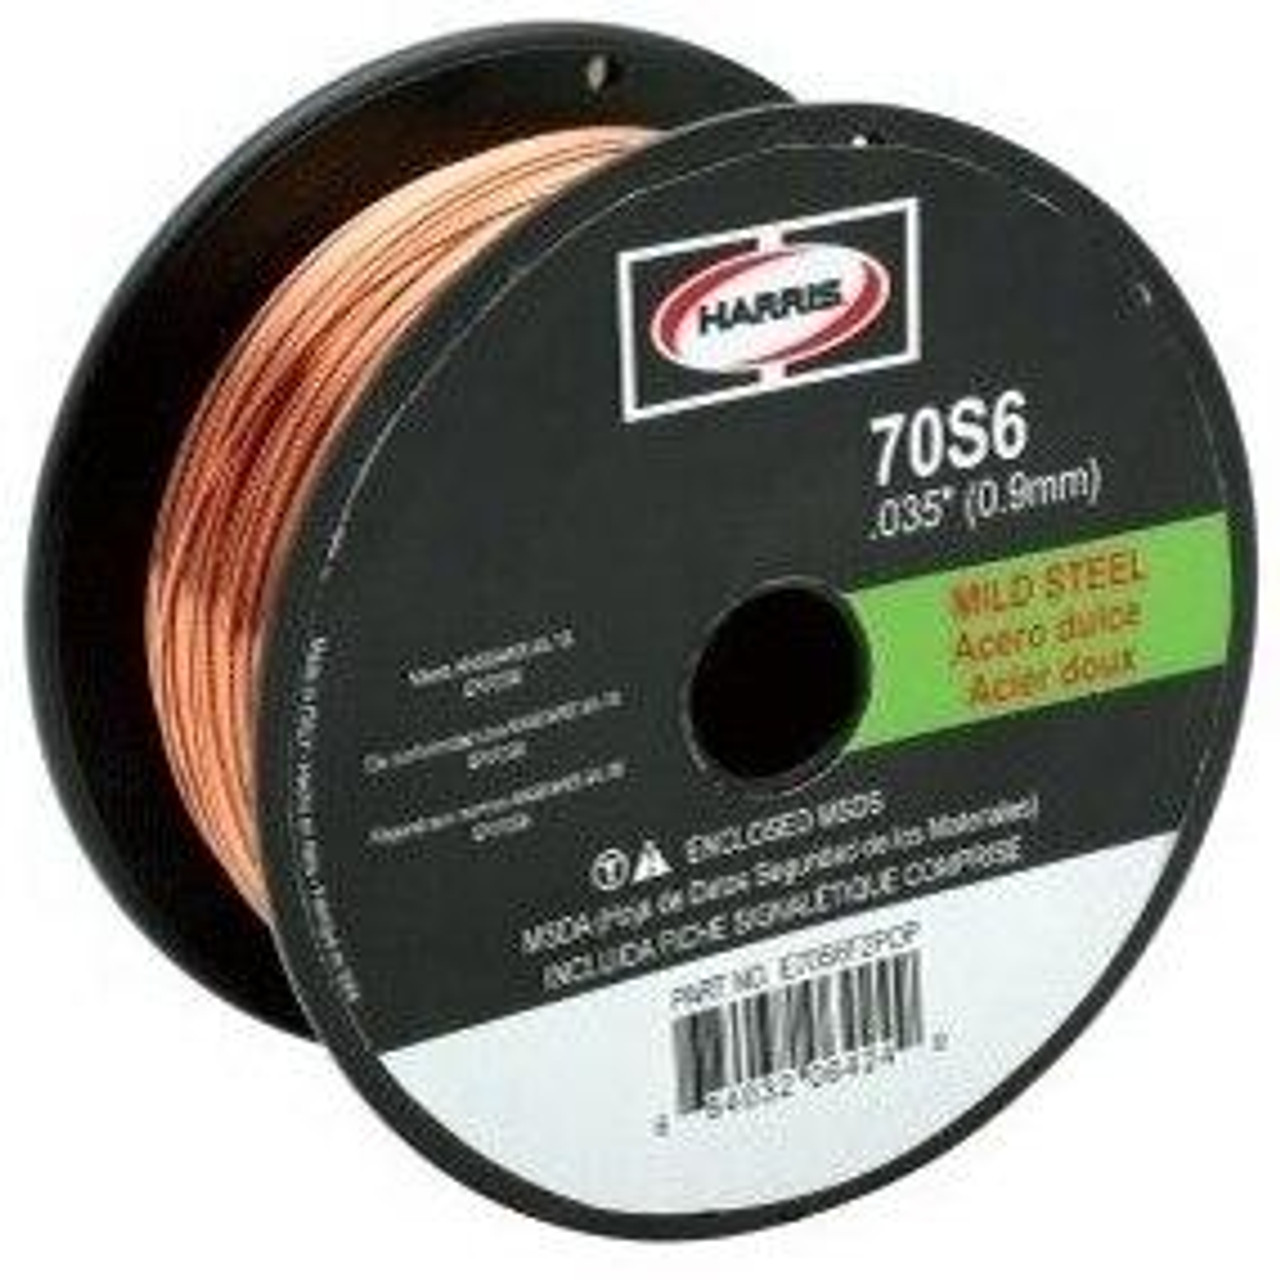 Harris ER 70S-6 MIG Welding Wire .045 on 11 lb Spools